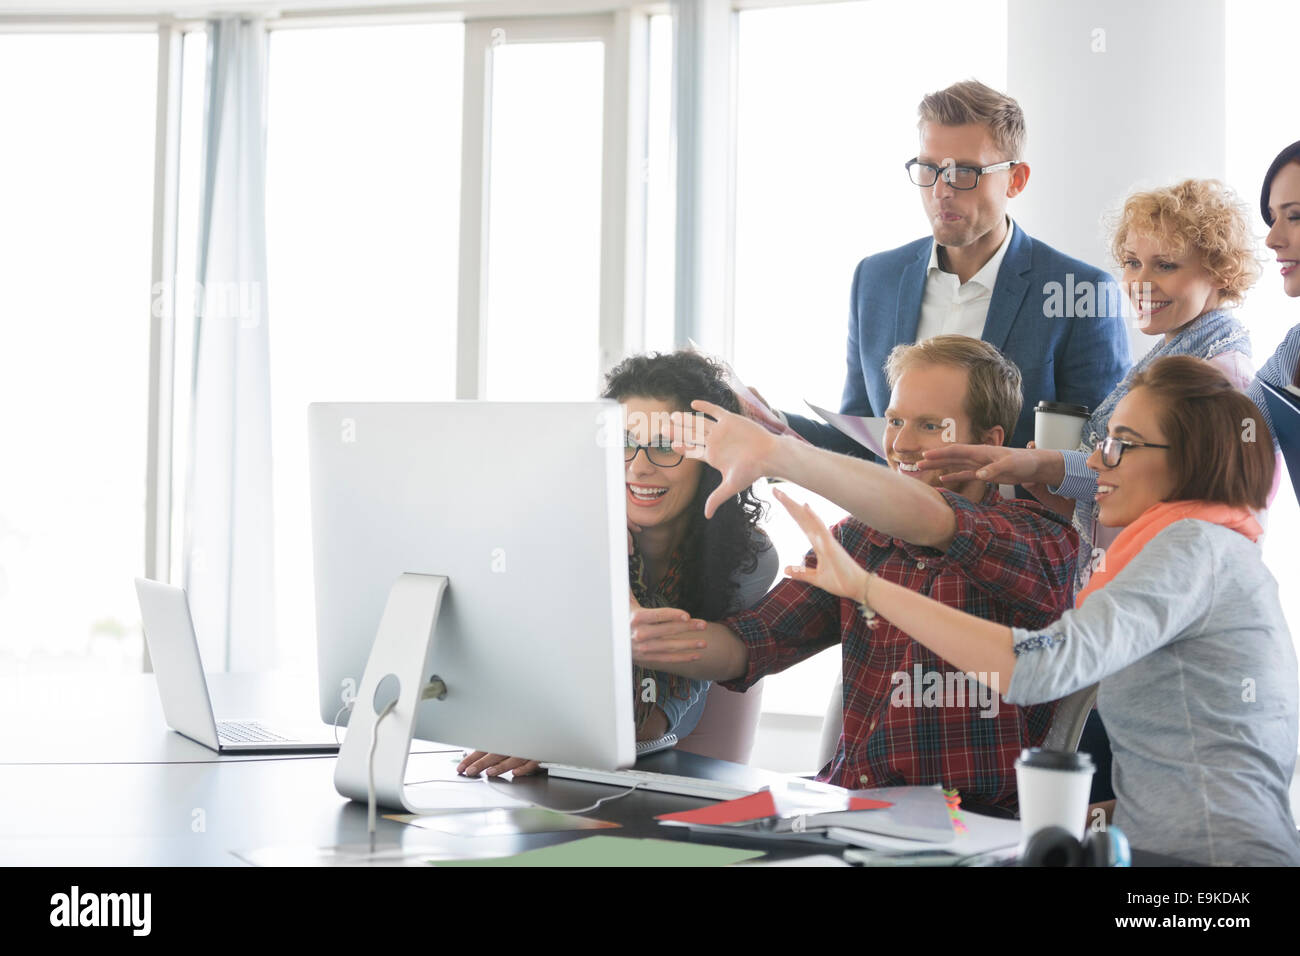 Business people using computer in office - Stock Image